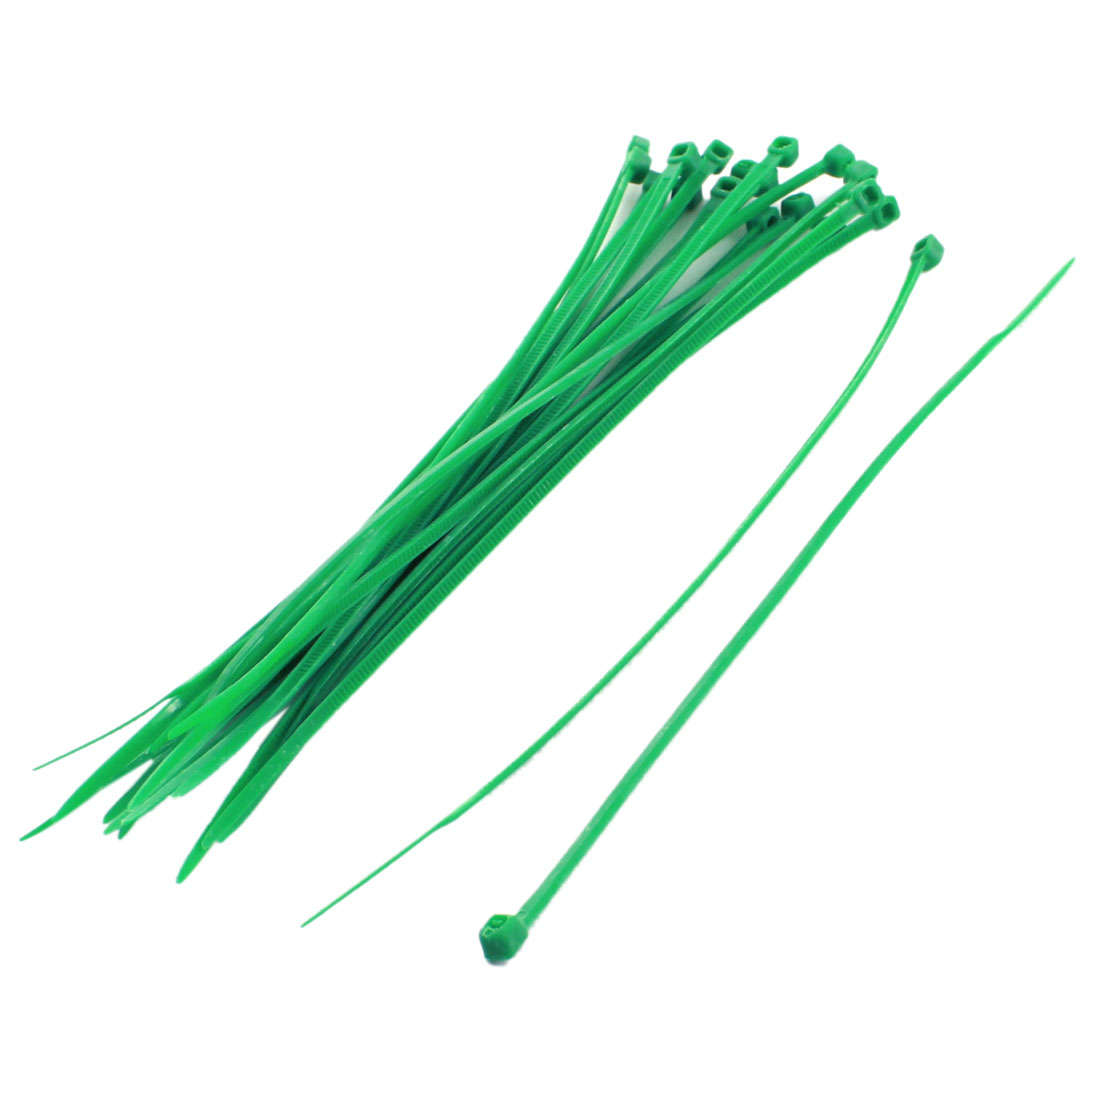 20Pcs 2mmx150mm Self Locking RC Helicopter Cable Ties Wire Strap Green